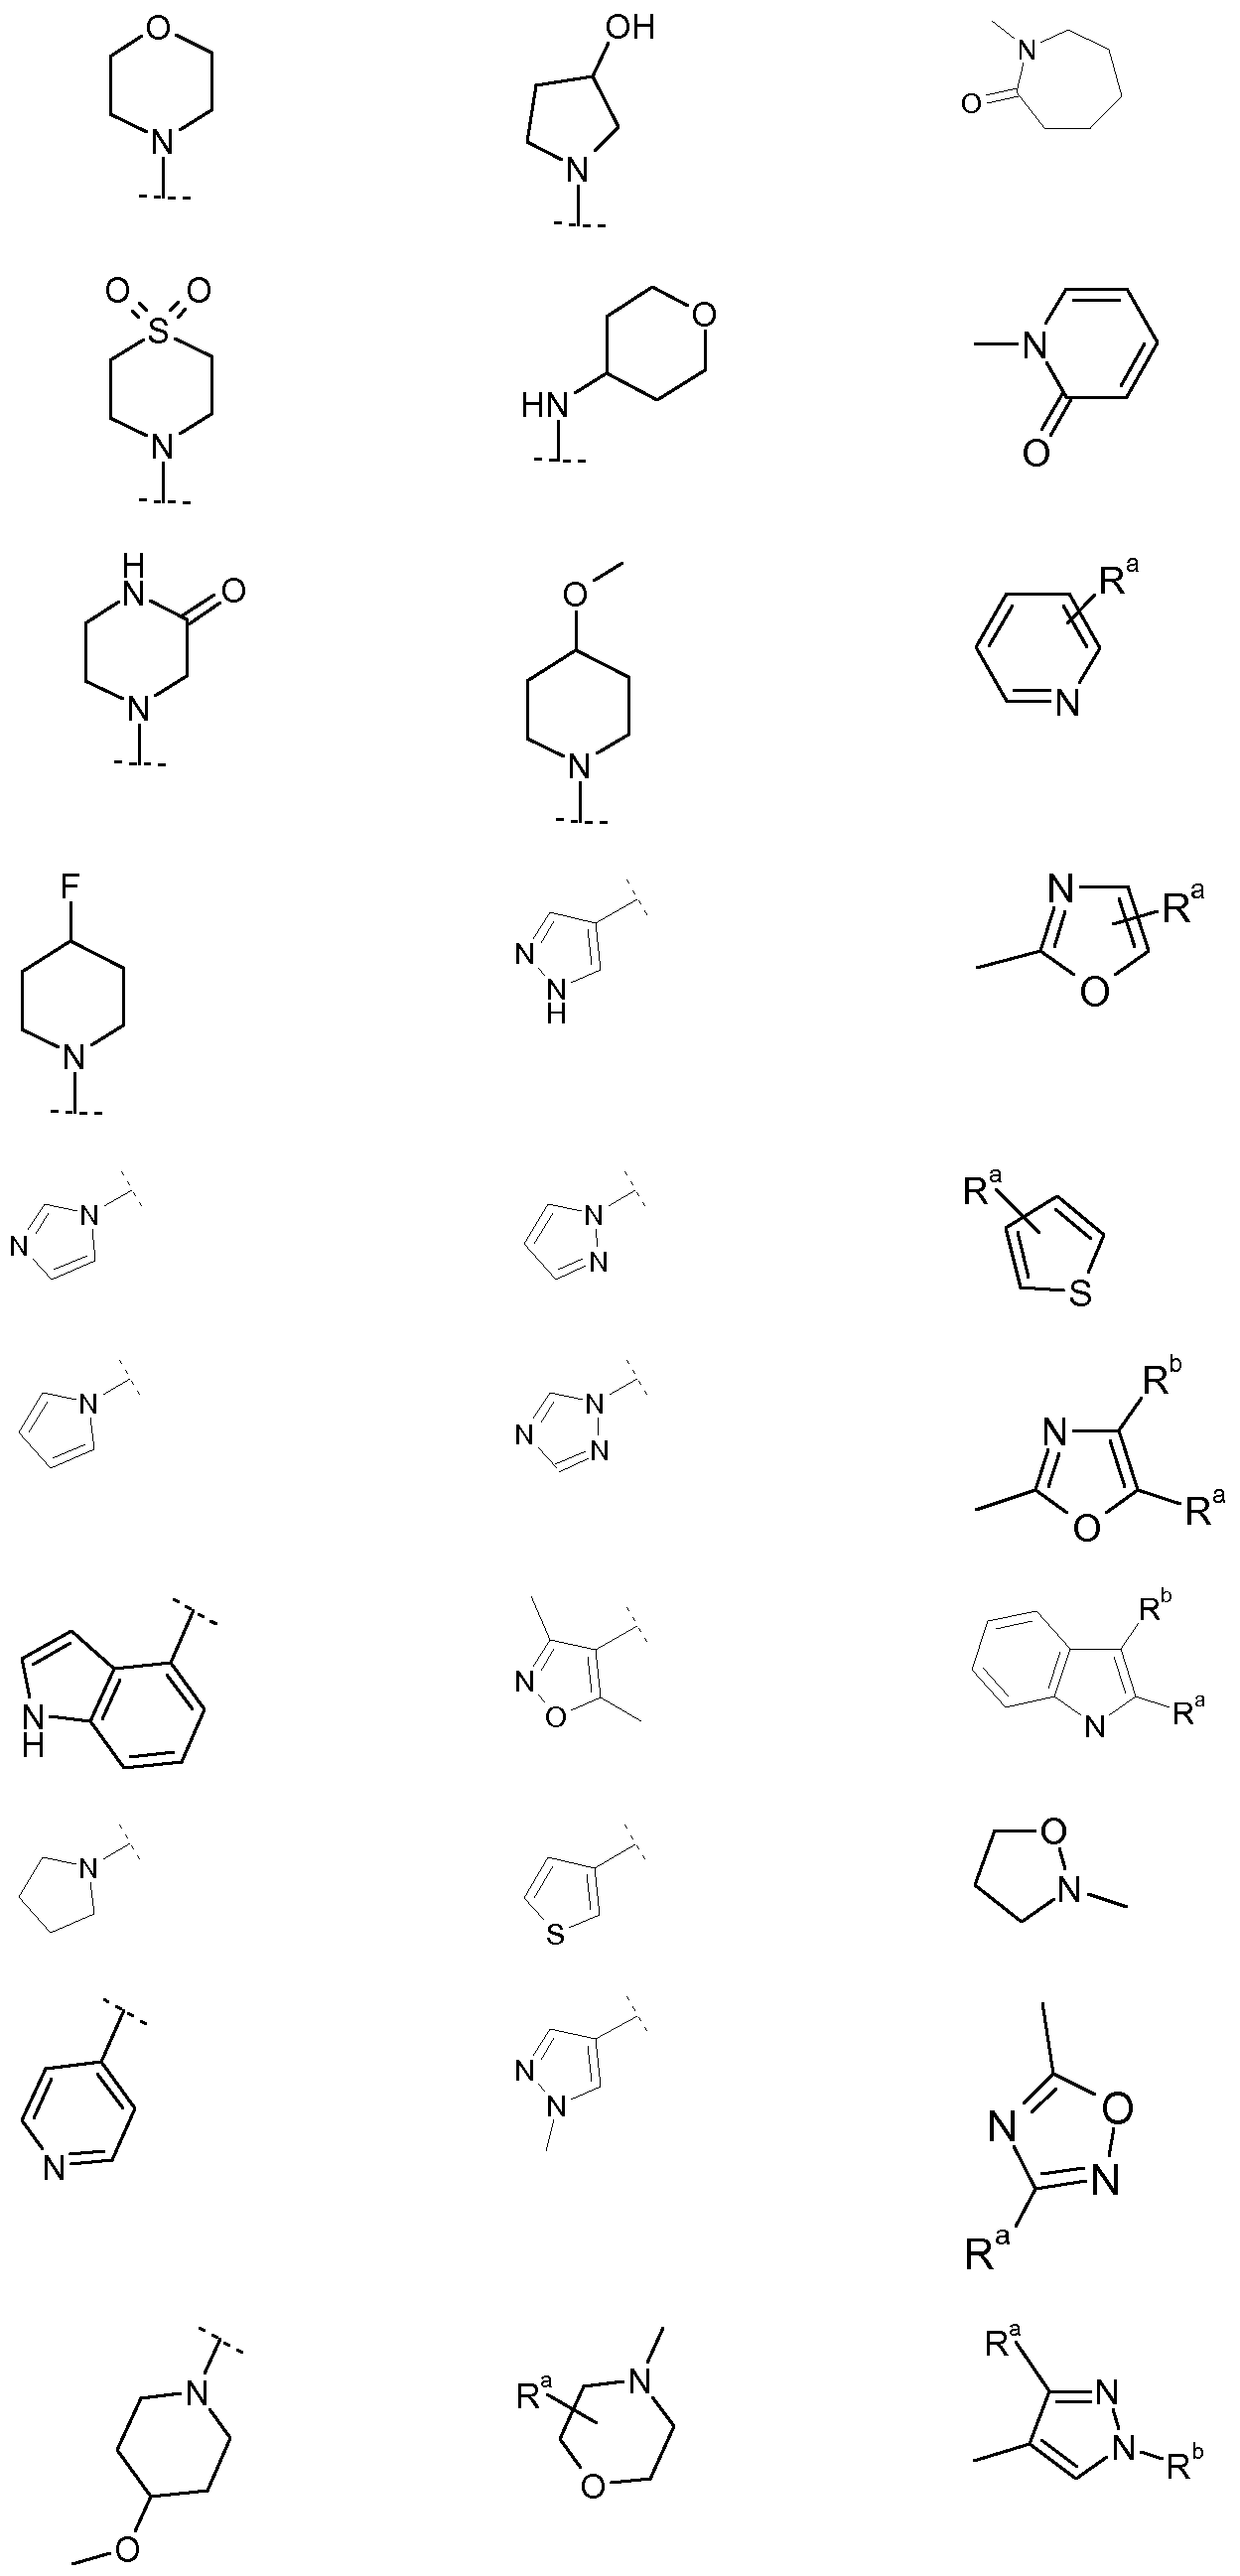 Displaying 20 gt  Images For - Nh2coh Lewis Structure   Nh2coh Lewis Structure